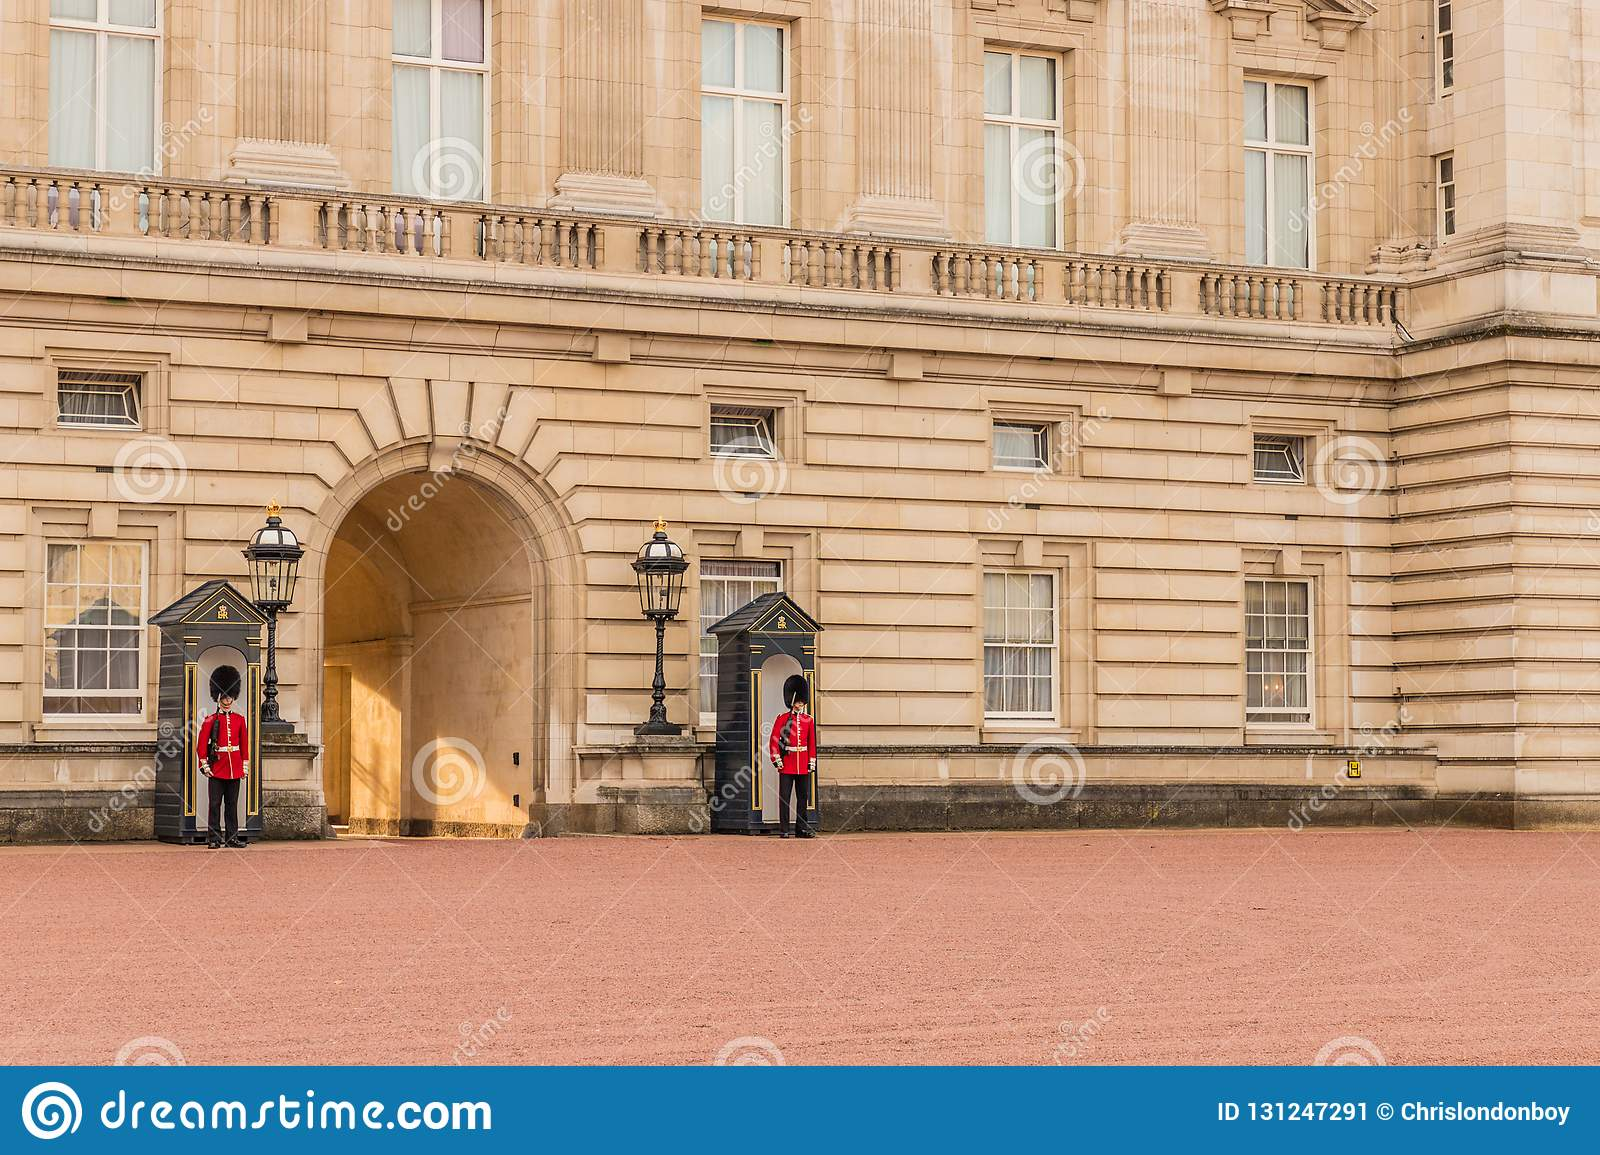 A typical view at Buckingham Palace